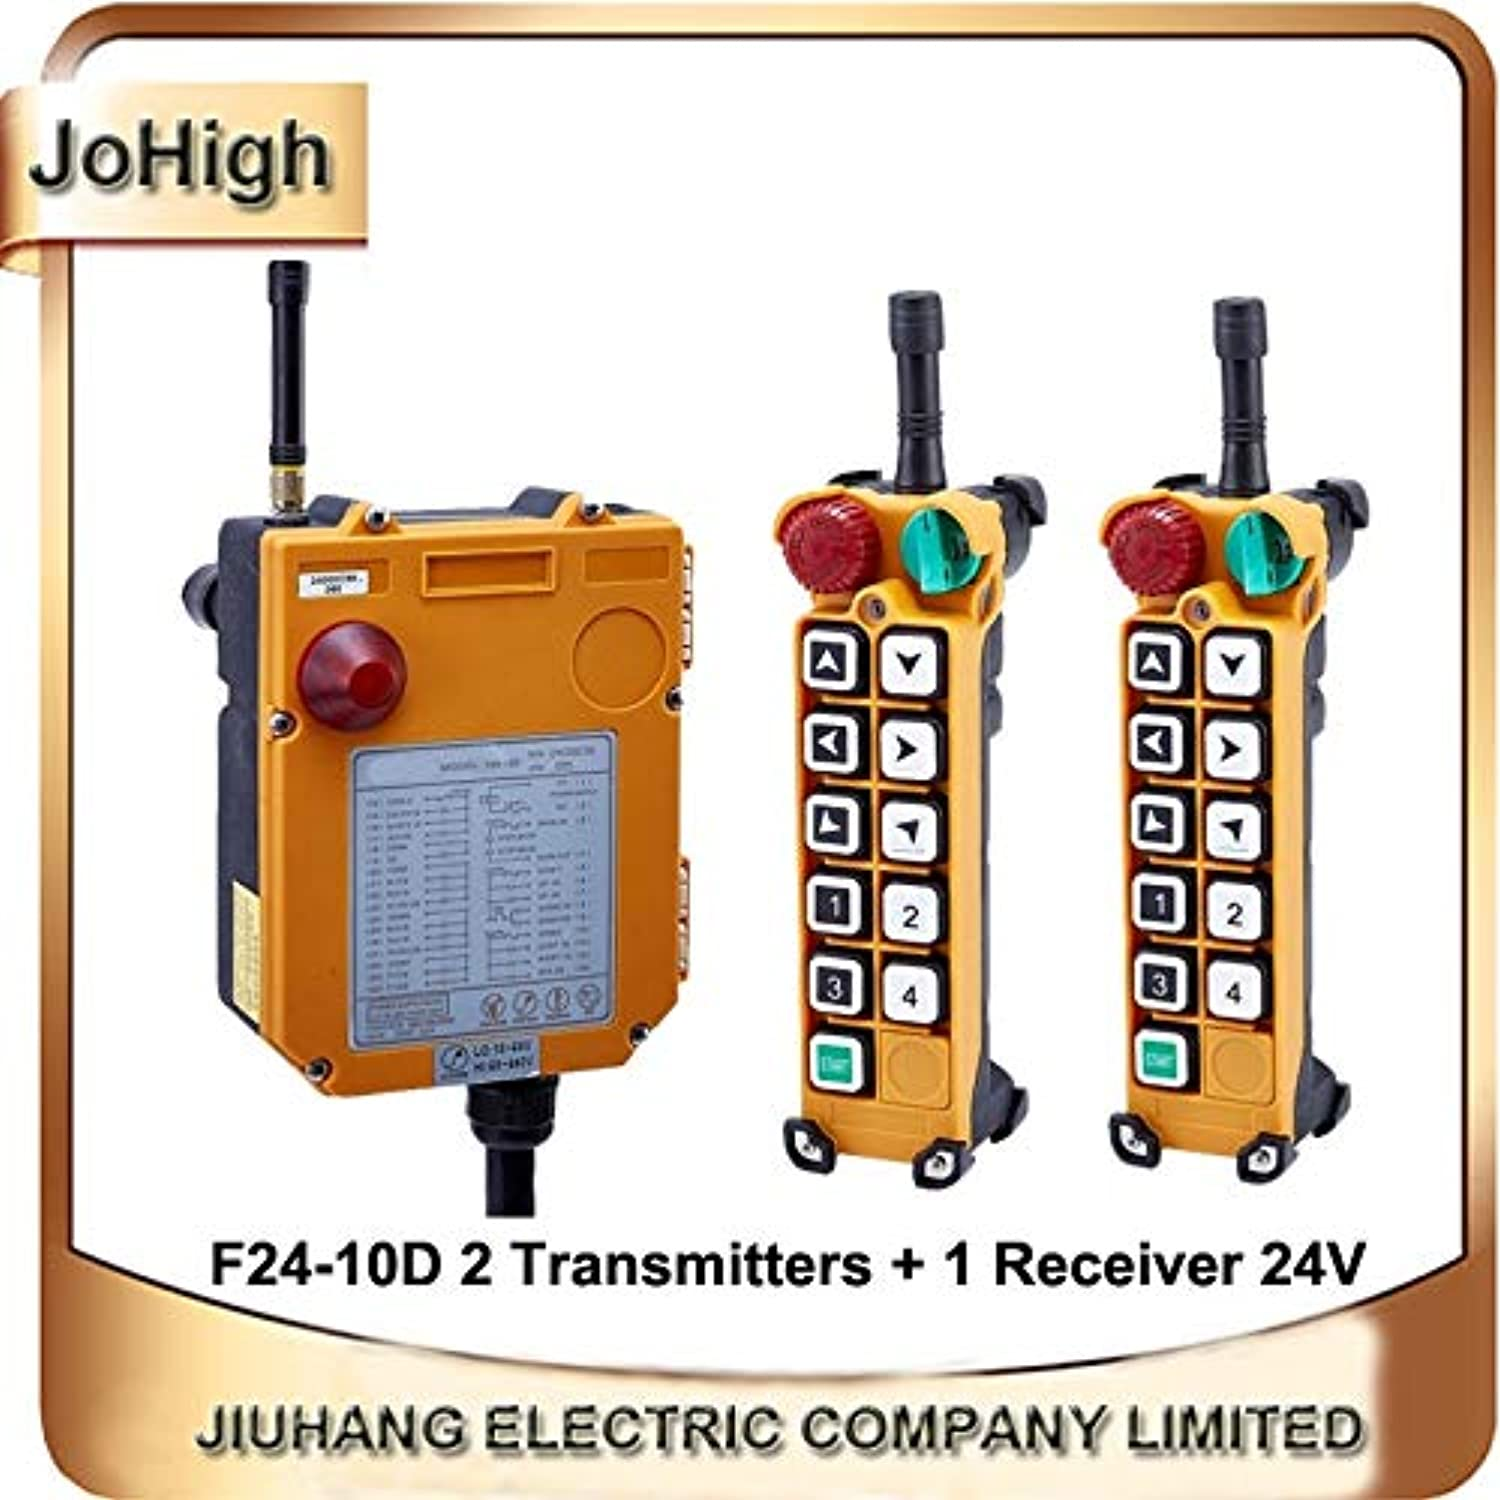 F2410D Double Speed Crane Remote Controller Switch 10 Channels Keys Direction 2 transmitters + 1 Receiver  (Voltage  220V)